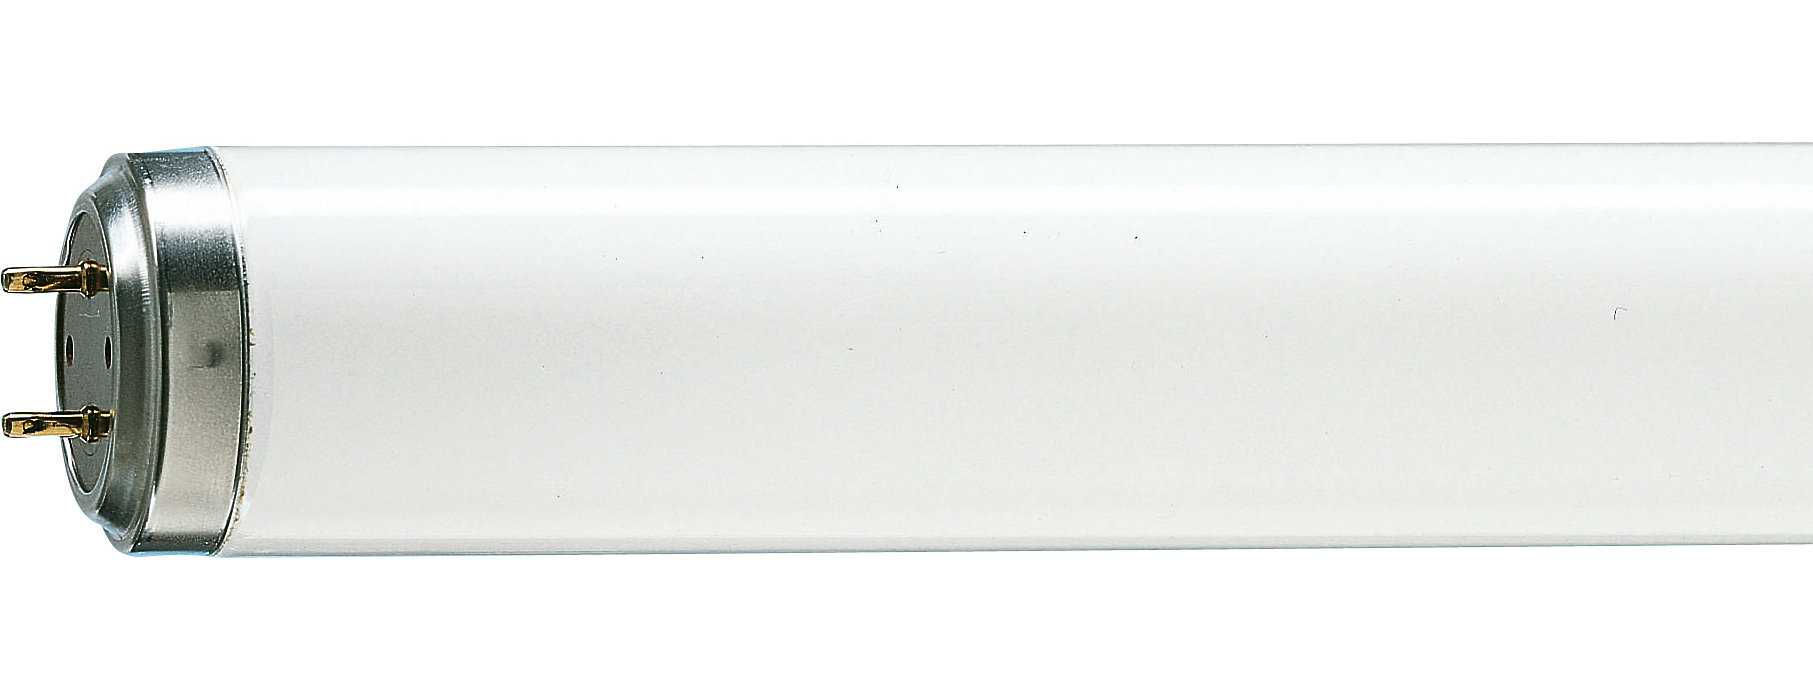 T12 Linear fluorescent lighting